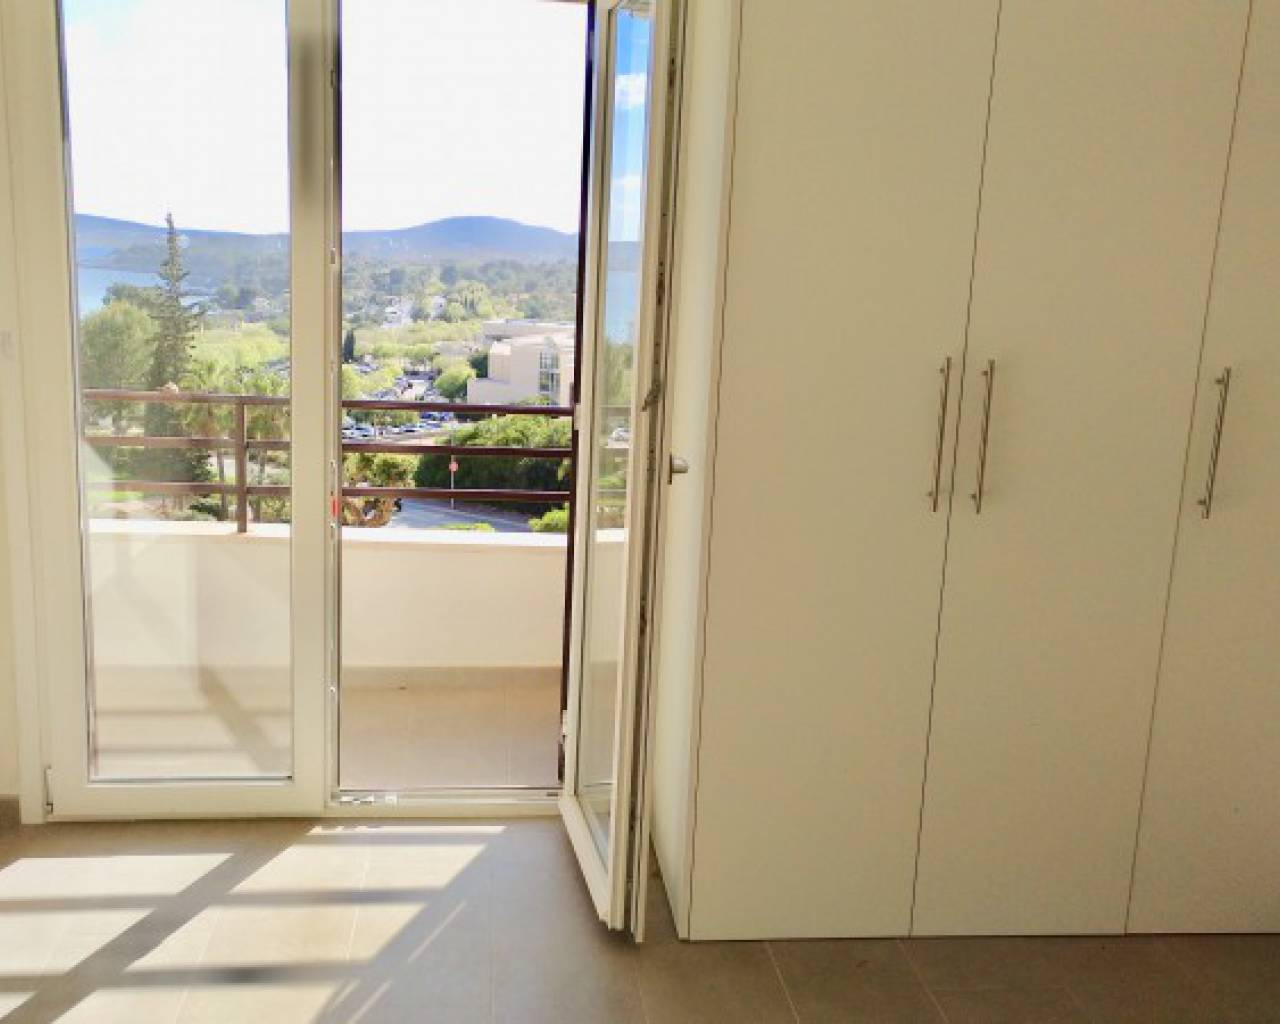 Apartment for rent in Portal Nous-mallorca renral agents